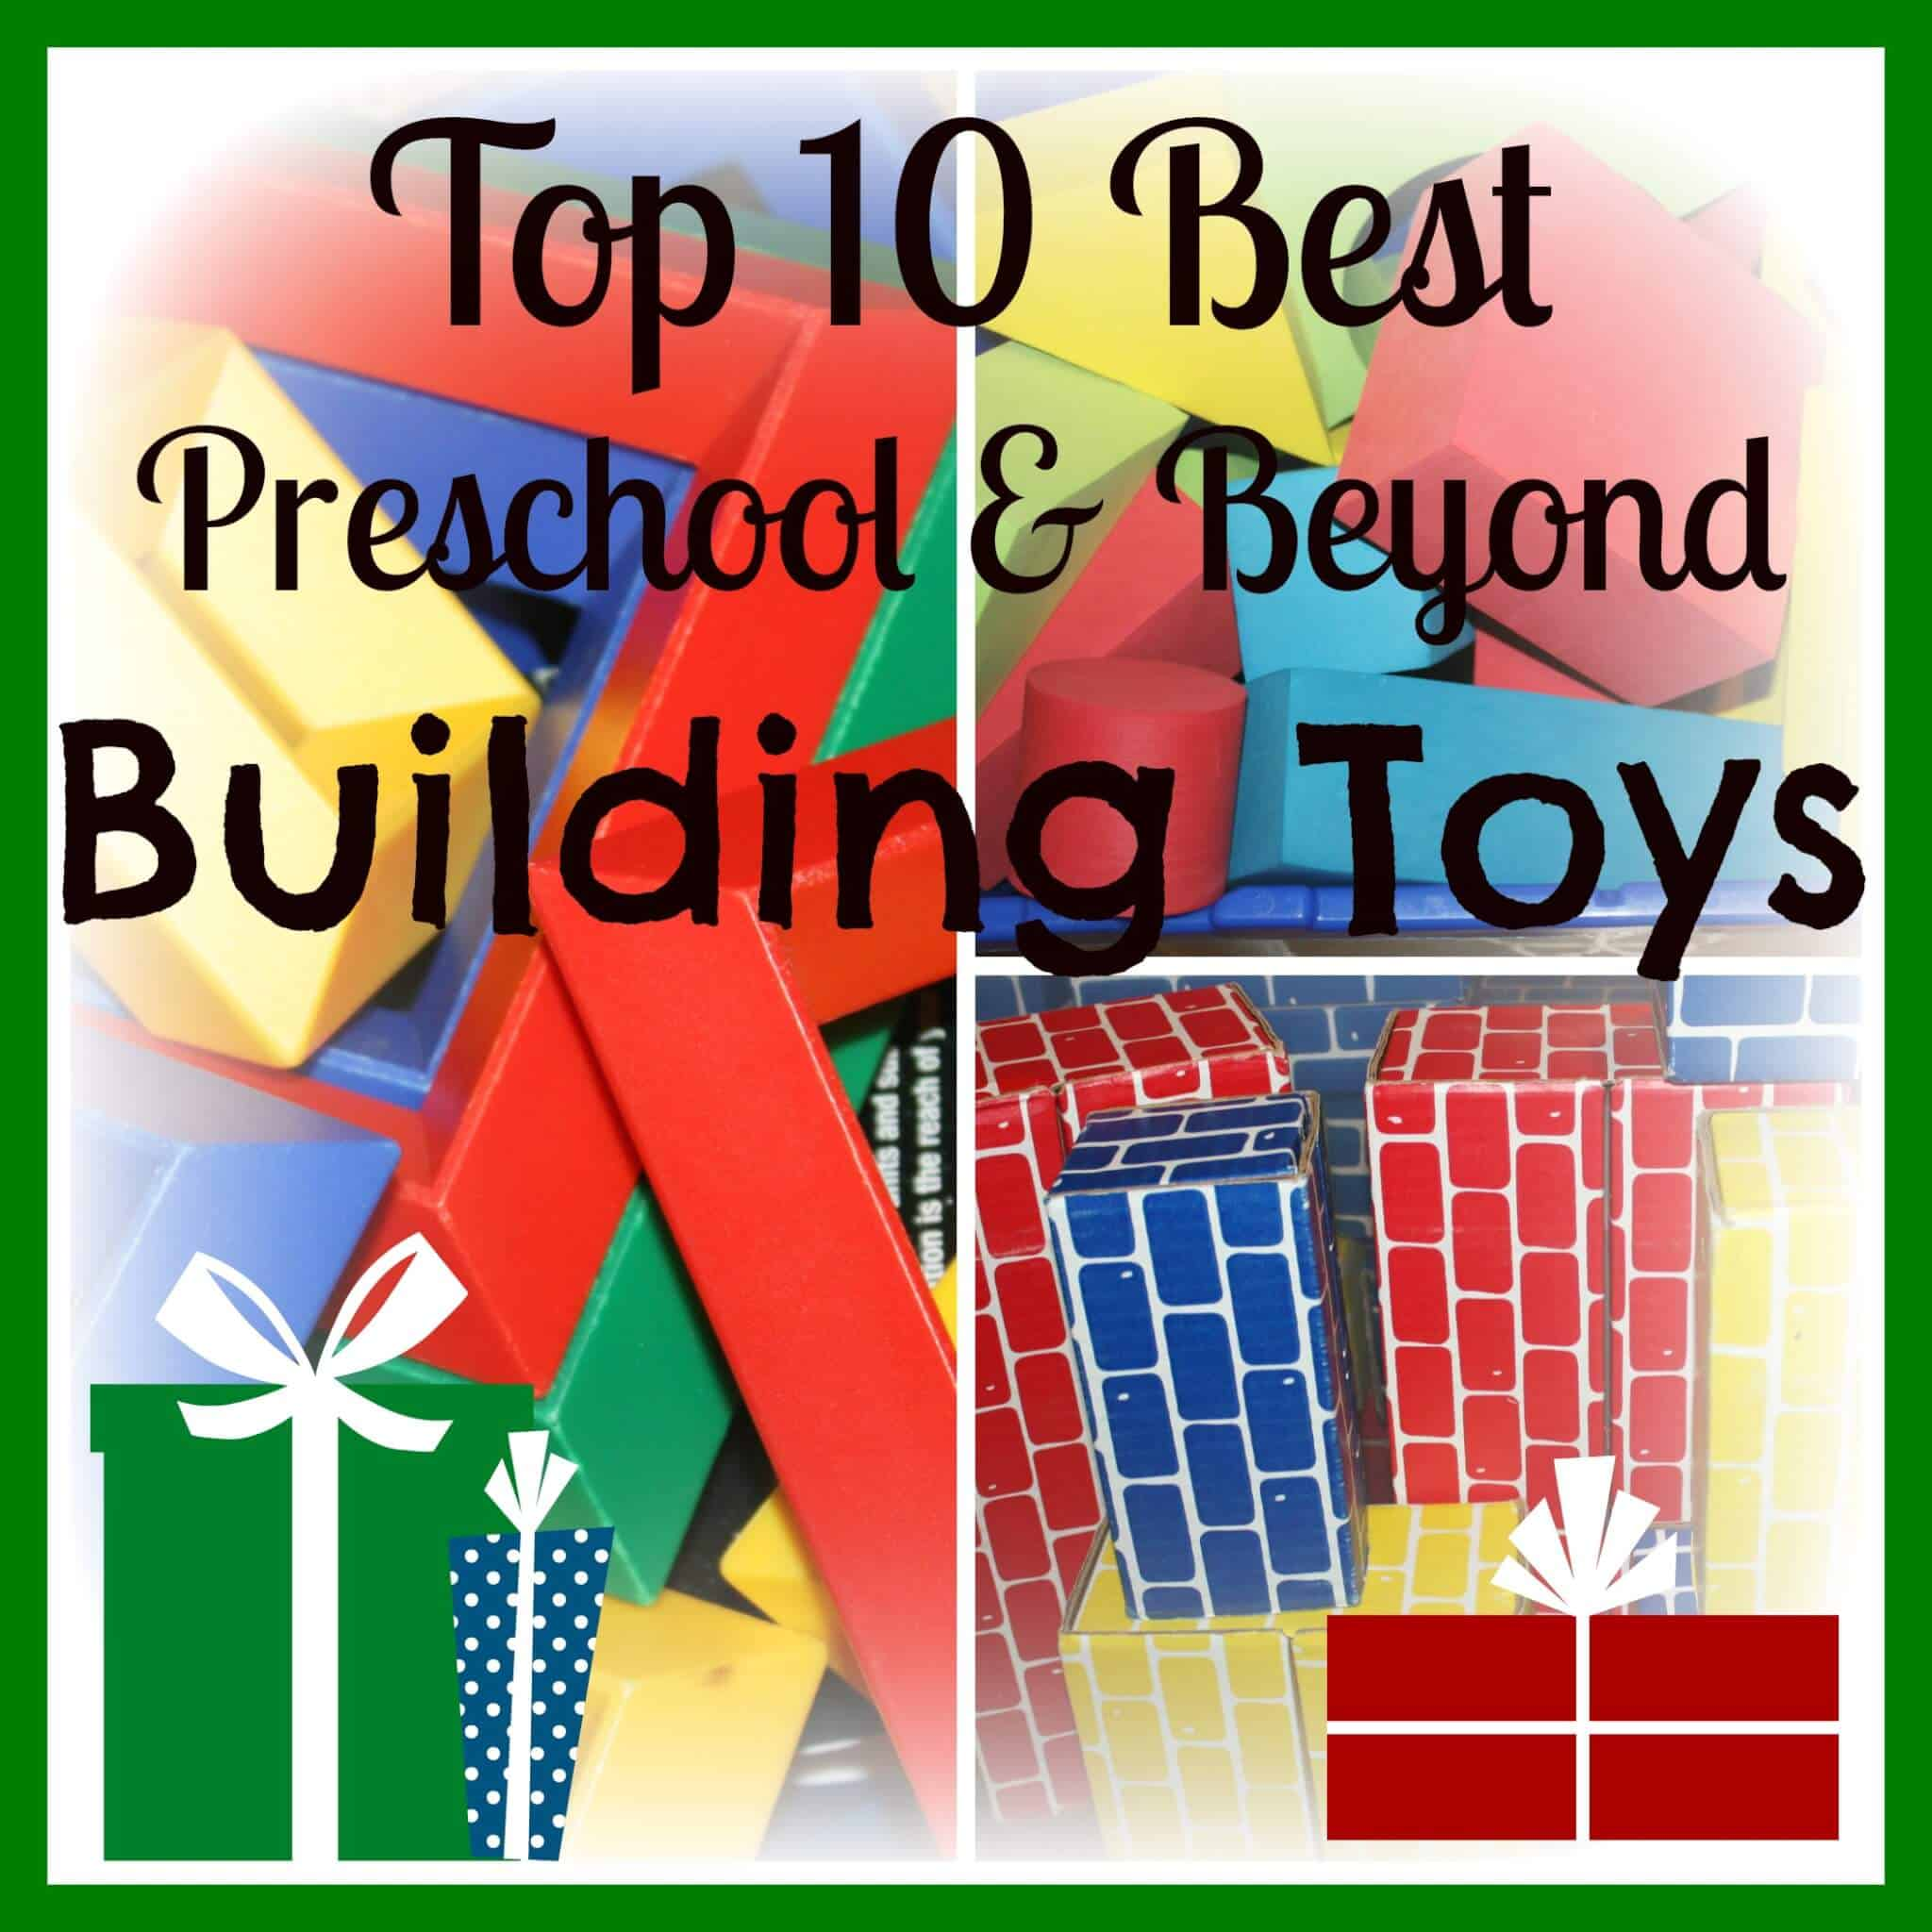 Top 10 Preschool Building Toys